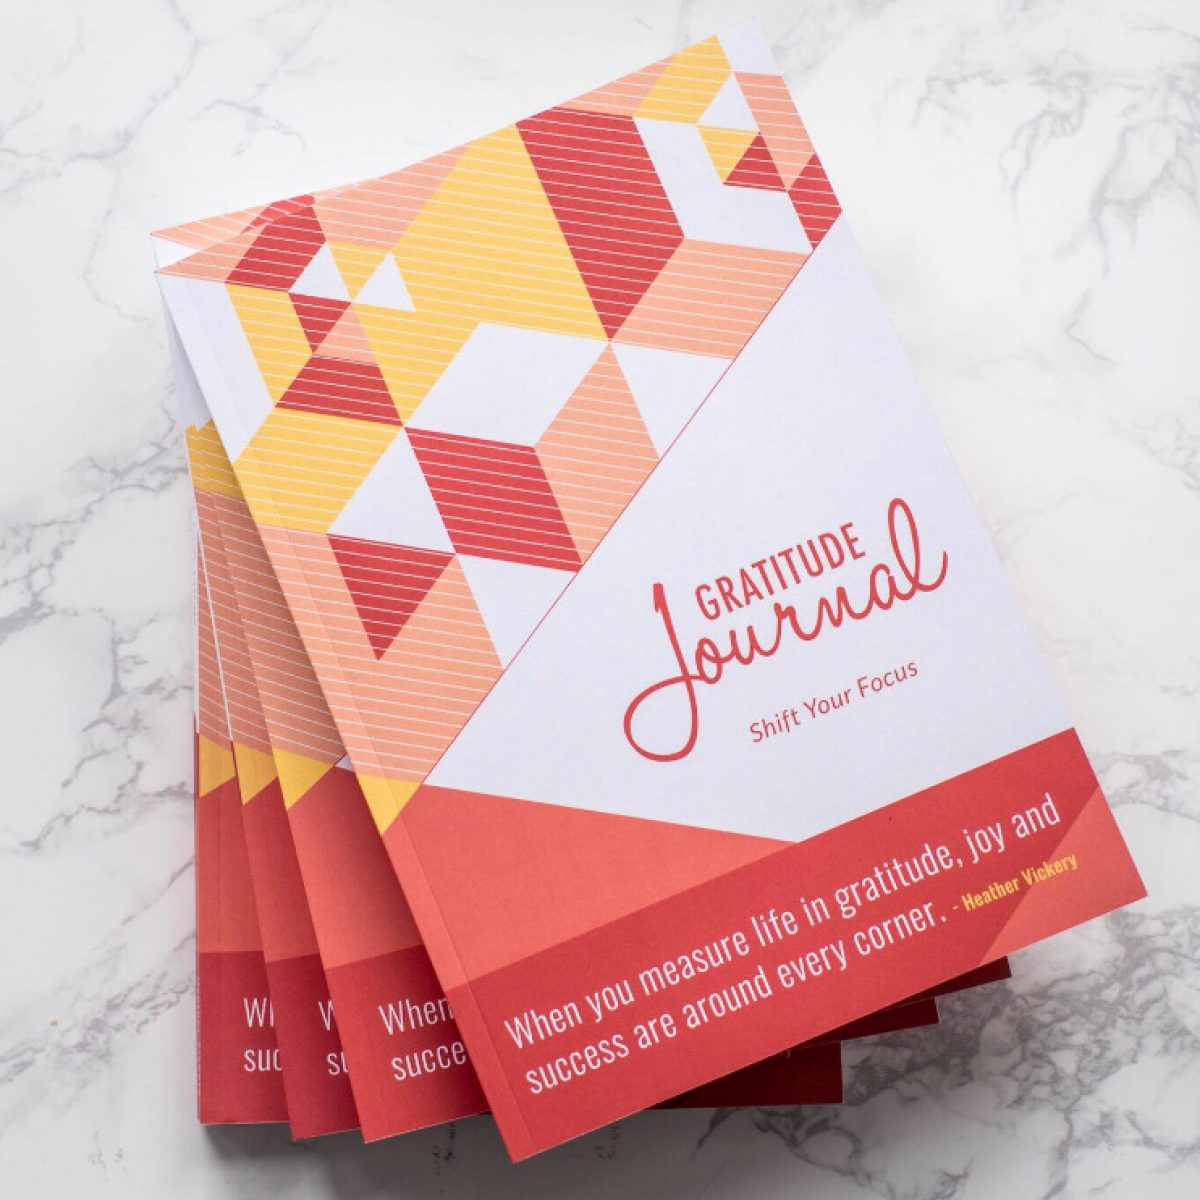 Success and Leadership Coach, Heather Vickery author's New book. Gratitude Journal: Shift Your Focus